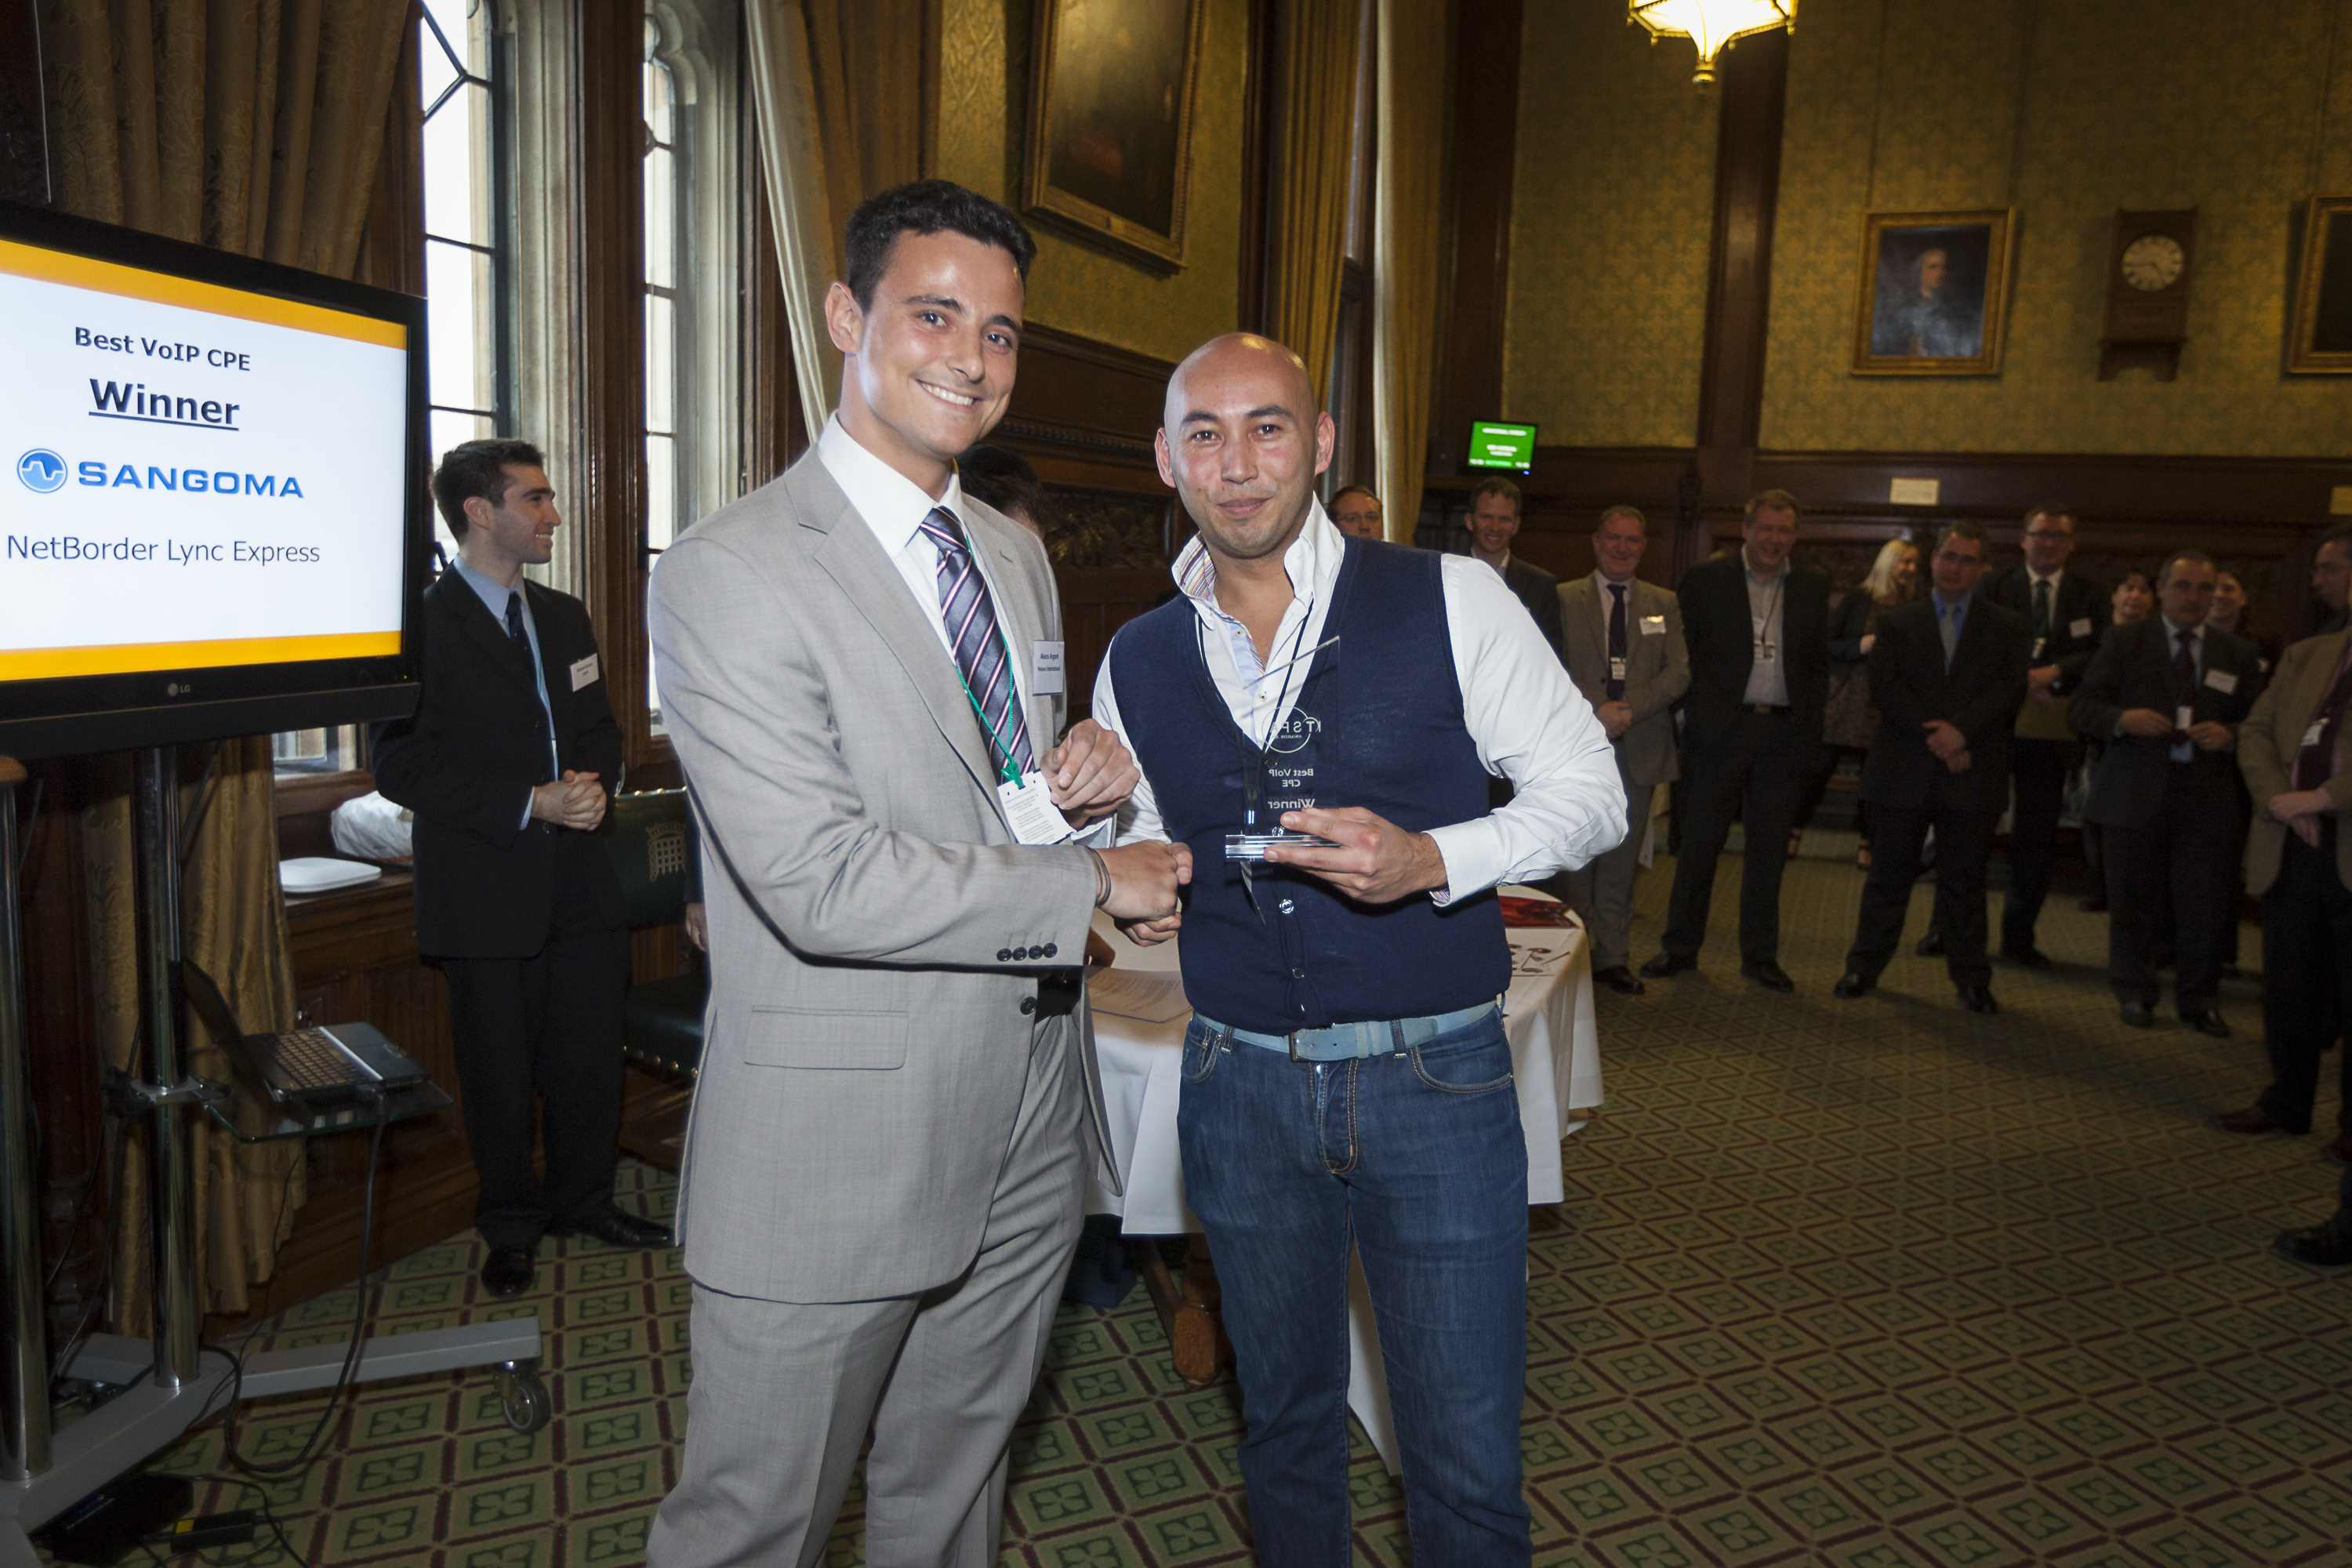 ITSPA Awards Announced in Parliament – Sangoma wins The Best VoIP CPE award 2013 + highly commended Grandstream – Sponsored by VoIPon